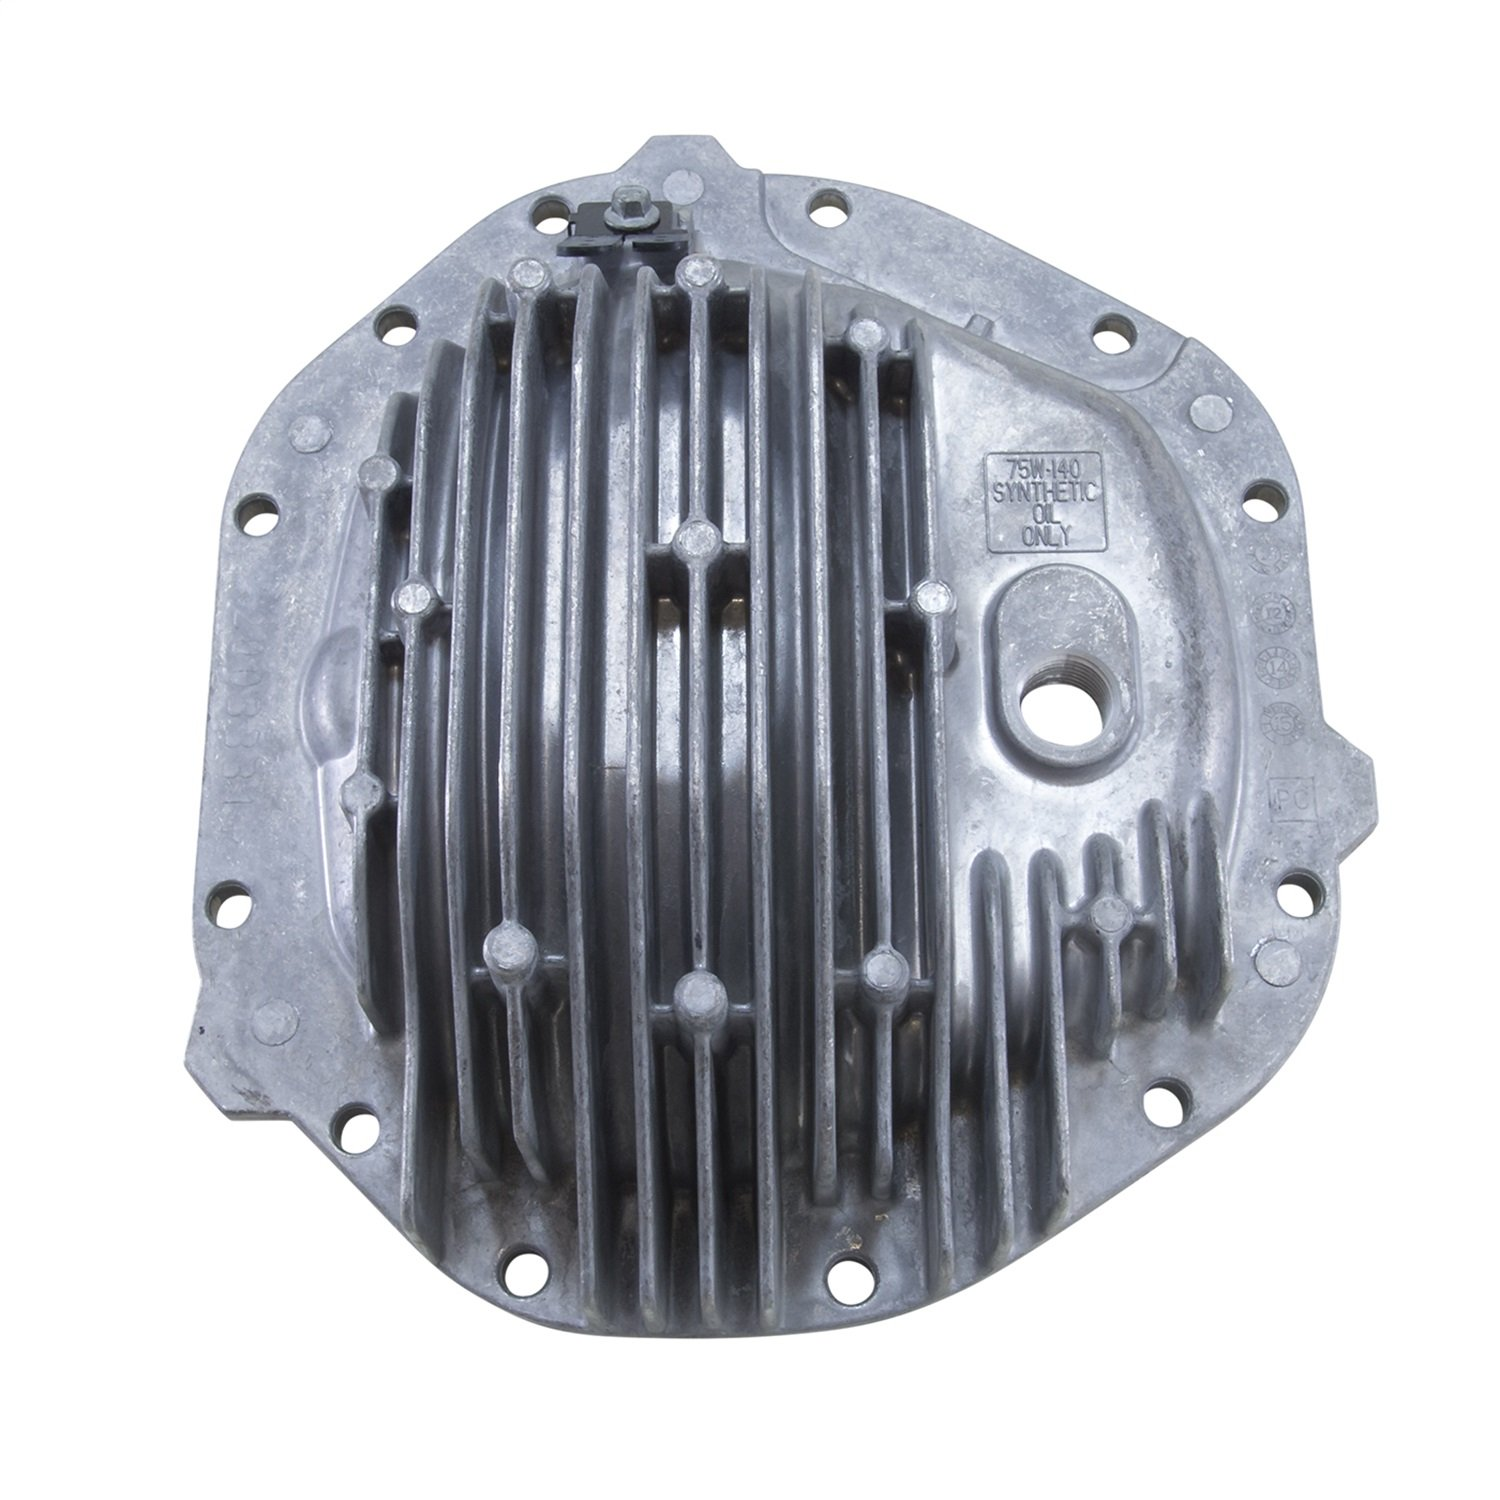 Yukon (YP C5-M226) Steel Cover for Nissan Titan M226 Rear Differential